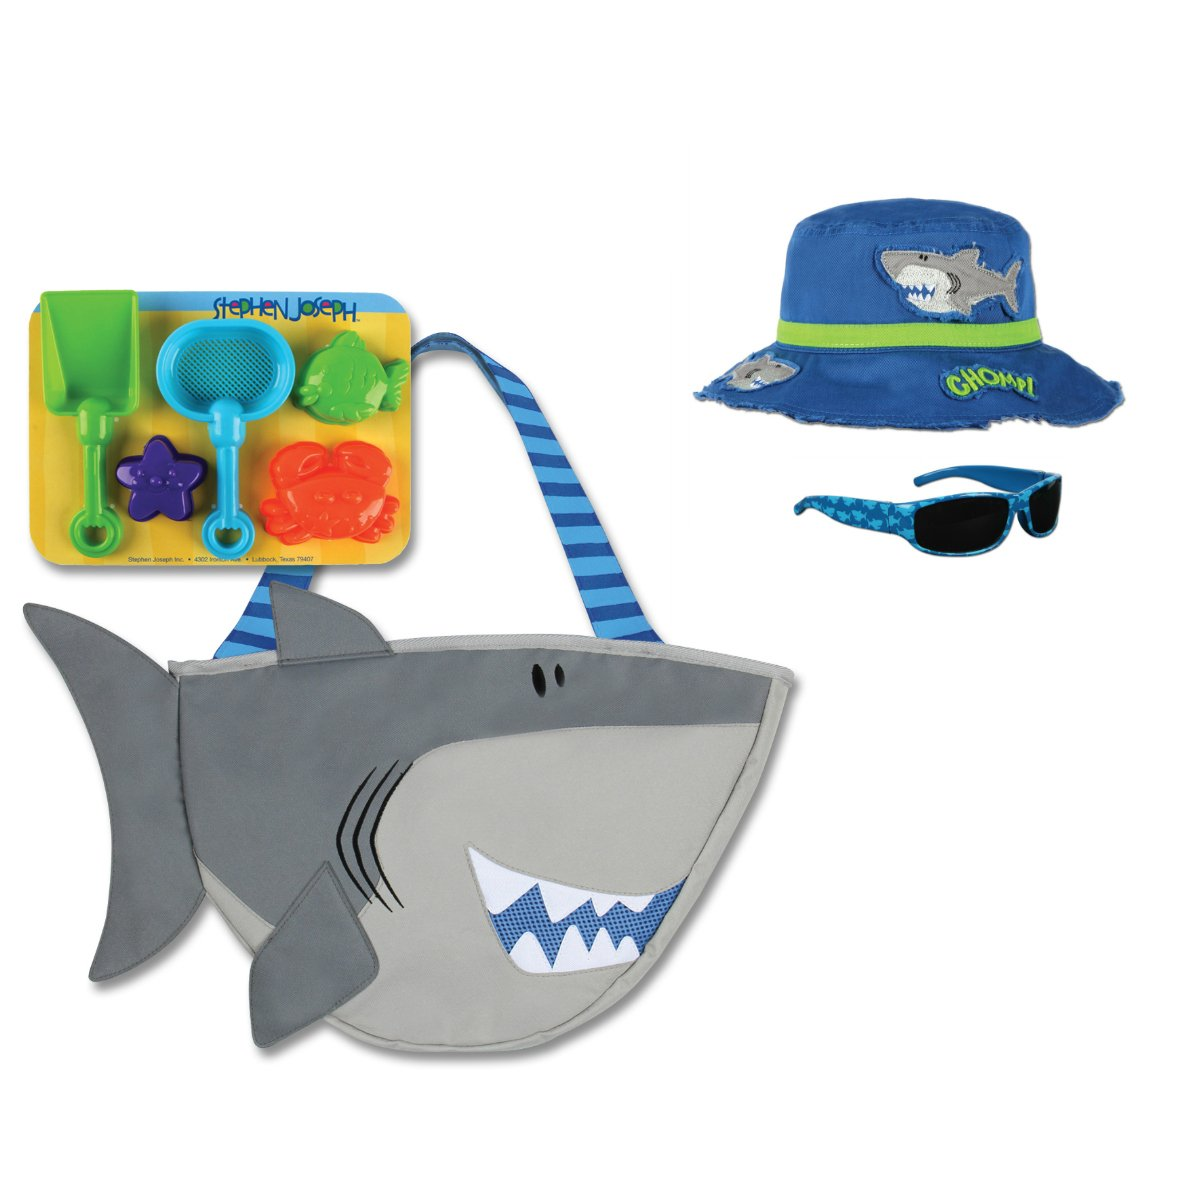 Stephen Joseph Shark Beach Tote Bag with Shark Bucket Hat and Sunglasses for Kids